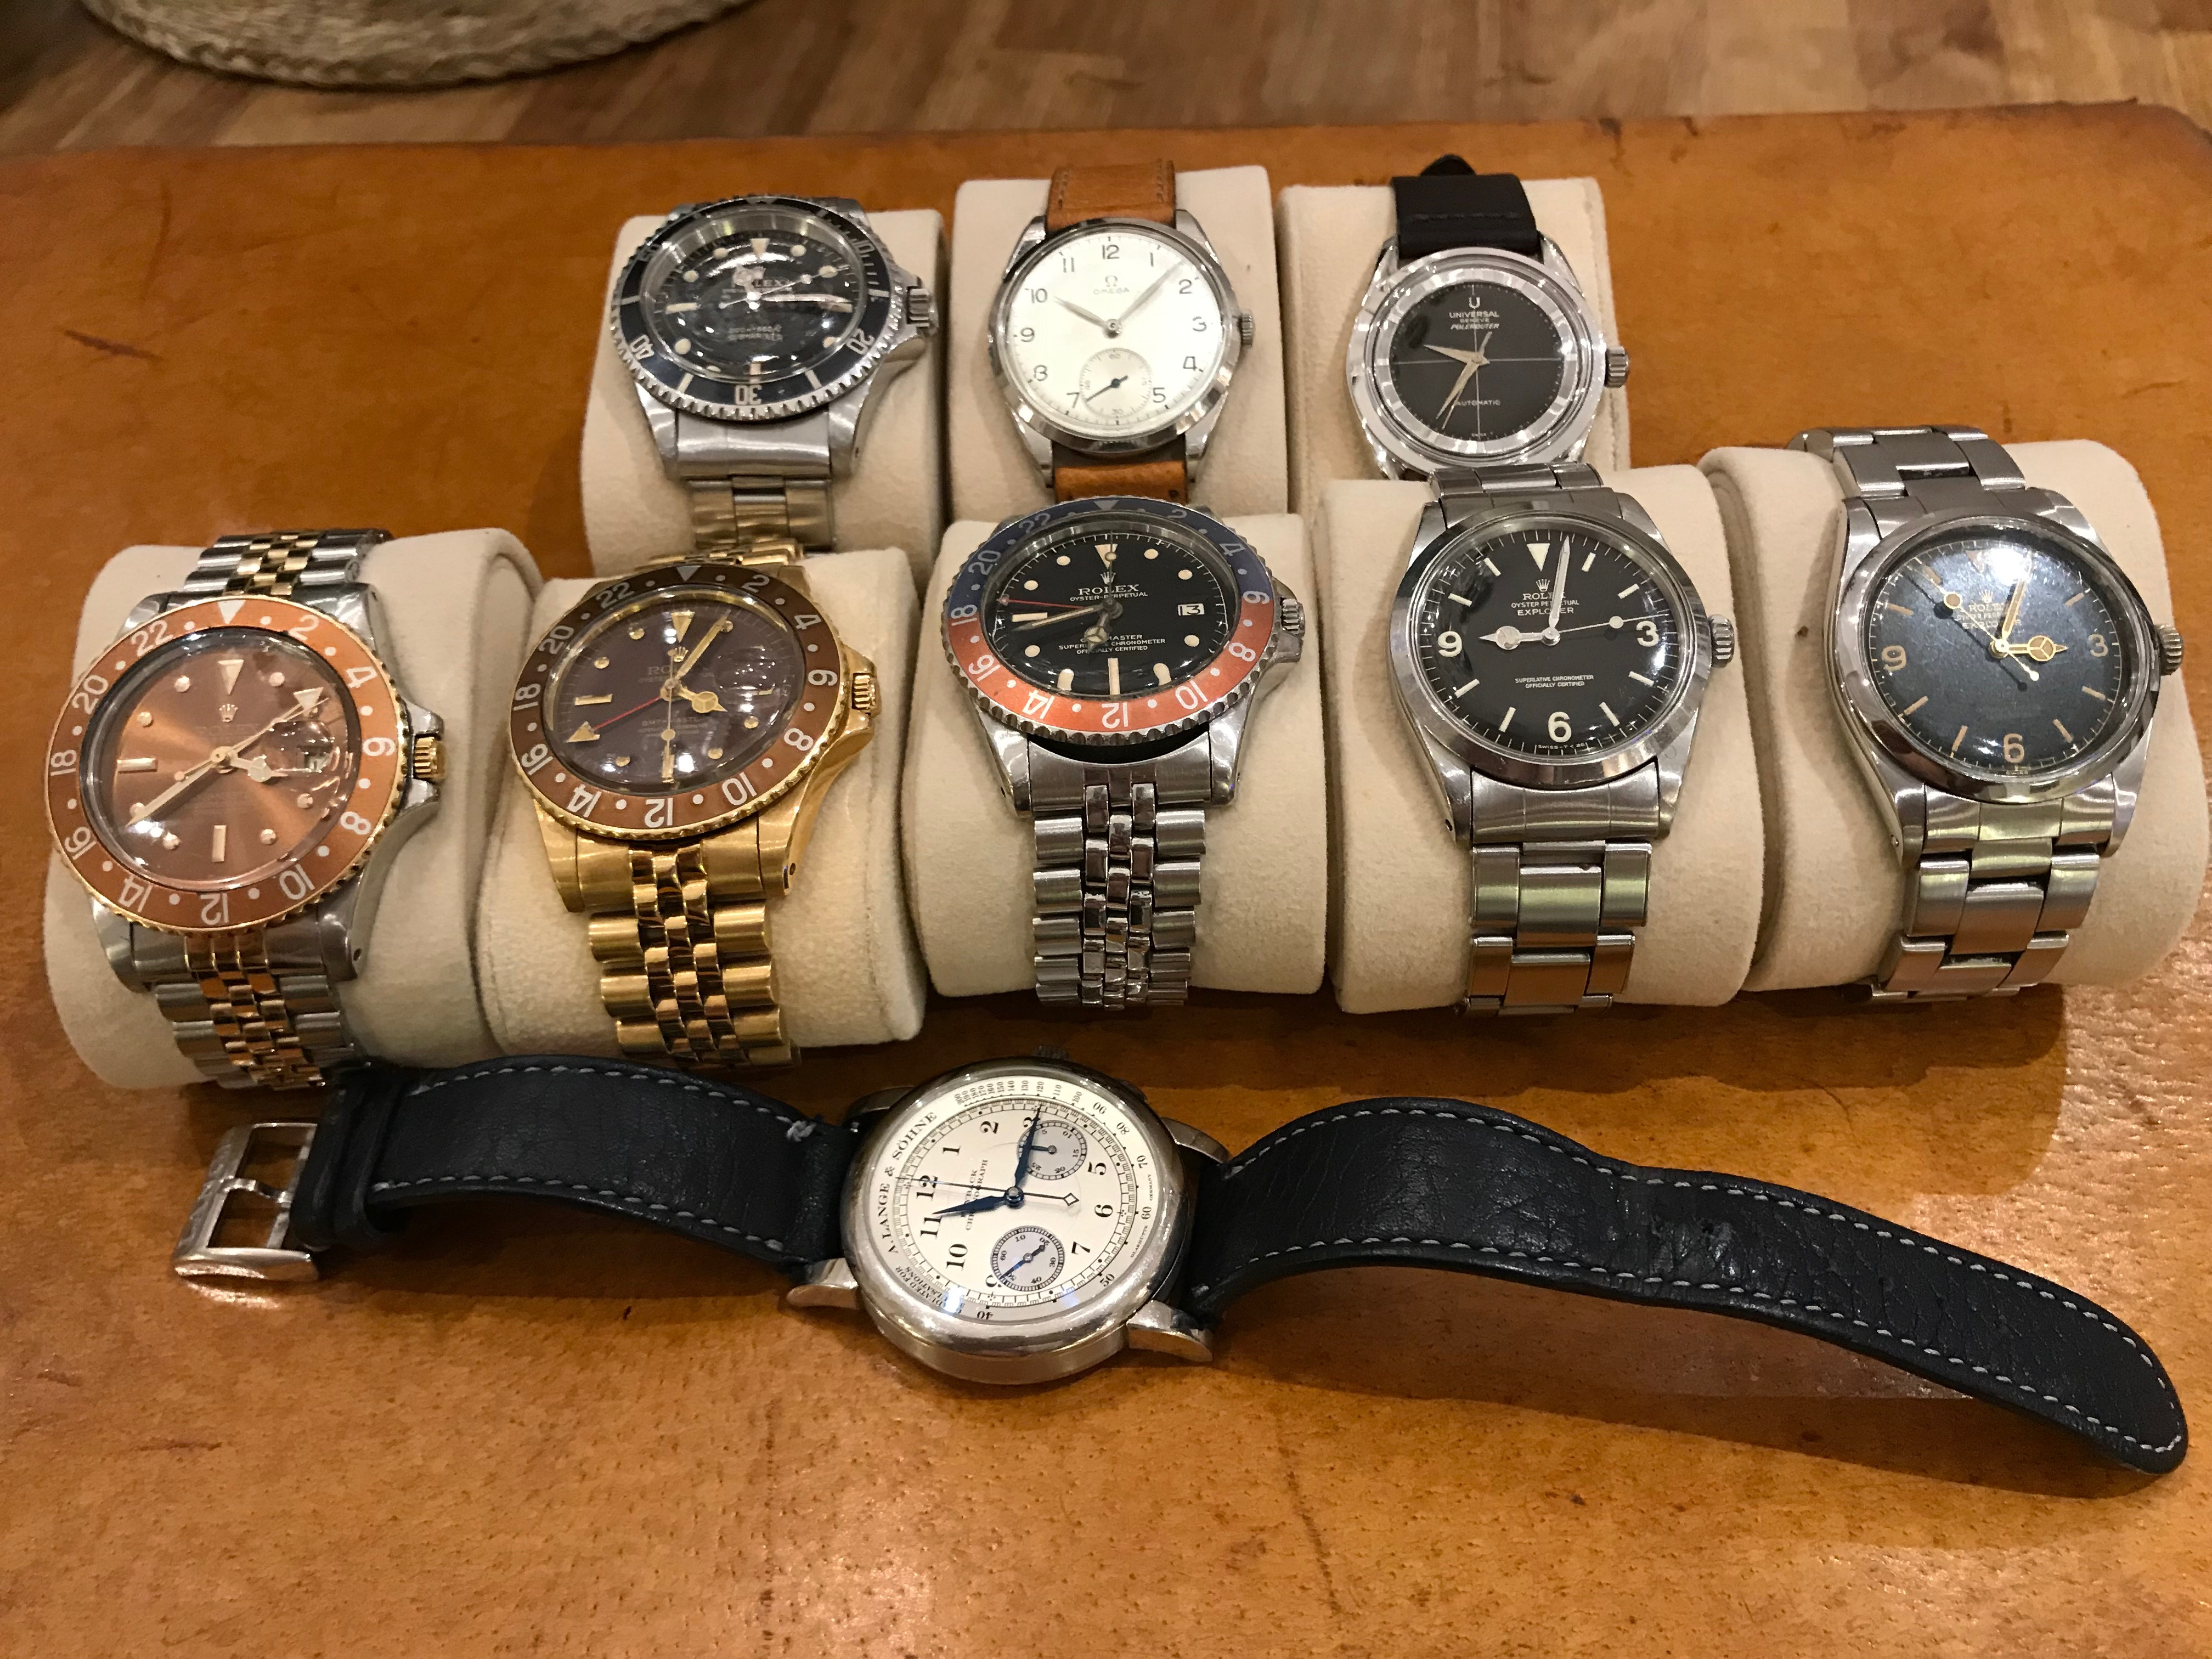 new arrival 6d888 85bb7 From that first Rolex, followed a tumultuous descent into vintage Rolex and  a whirlwind of references came and went. Some missteps were sold on during  the ...